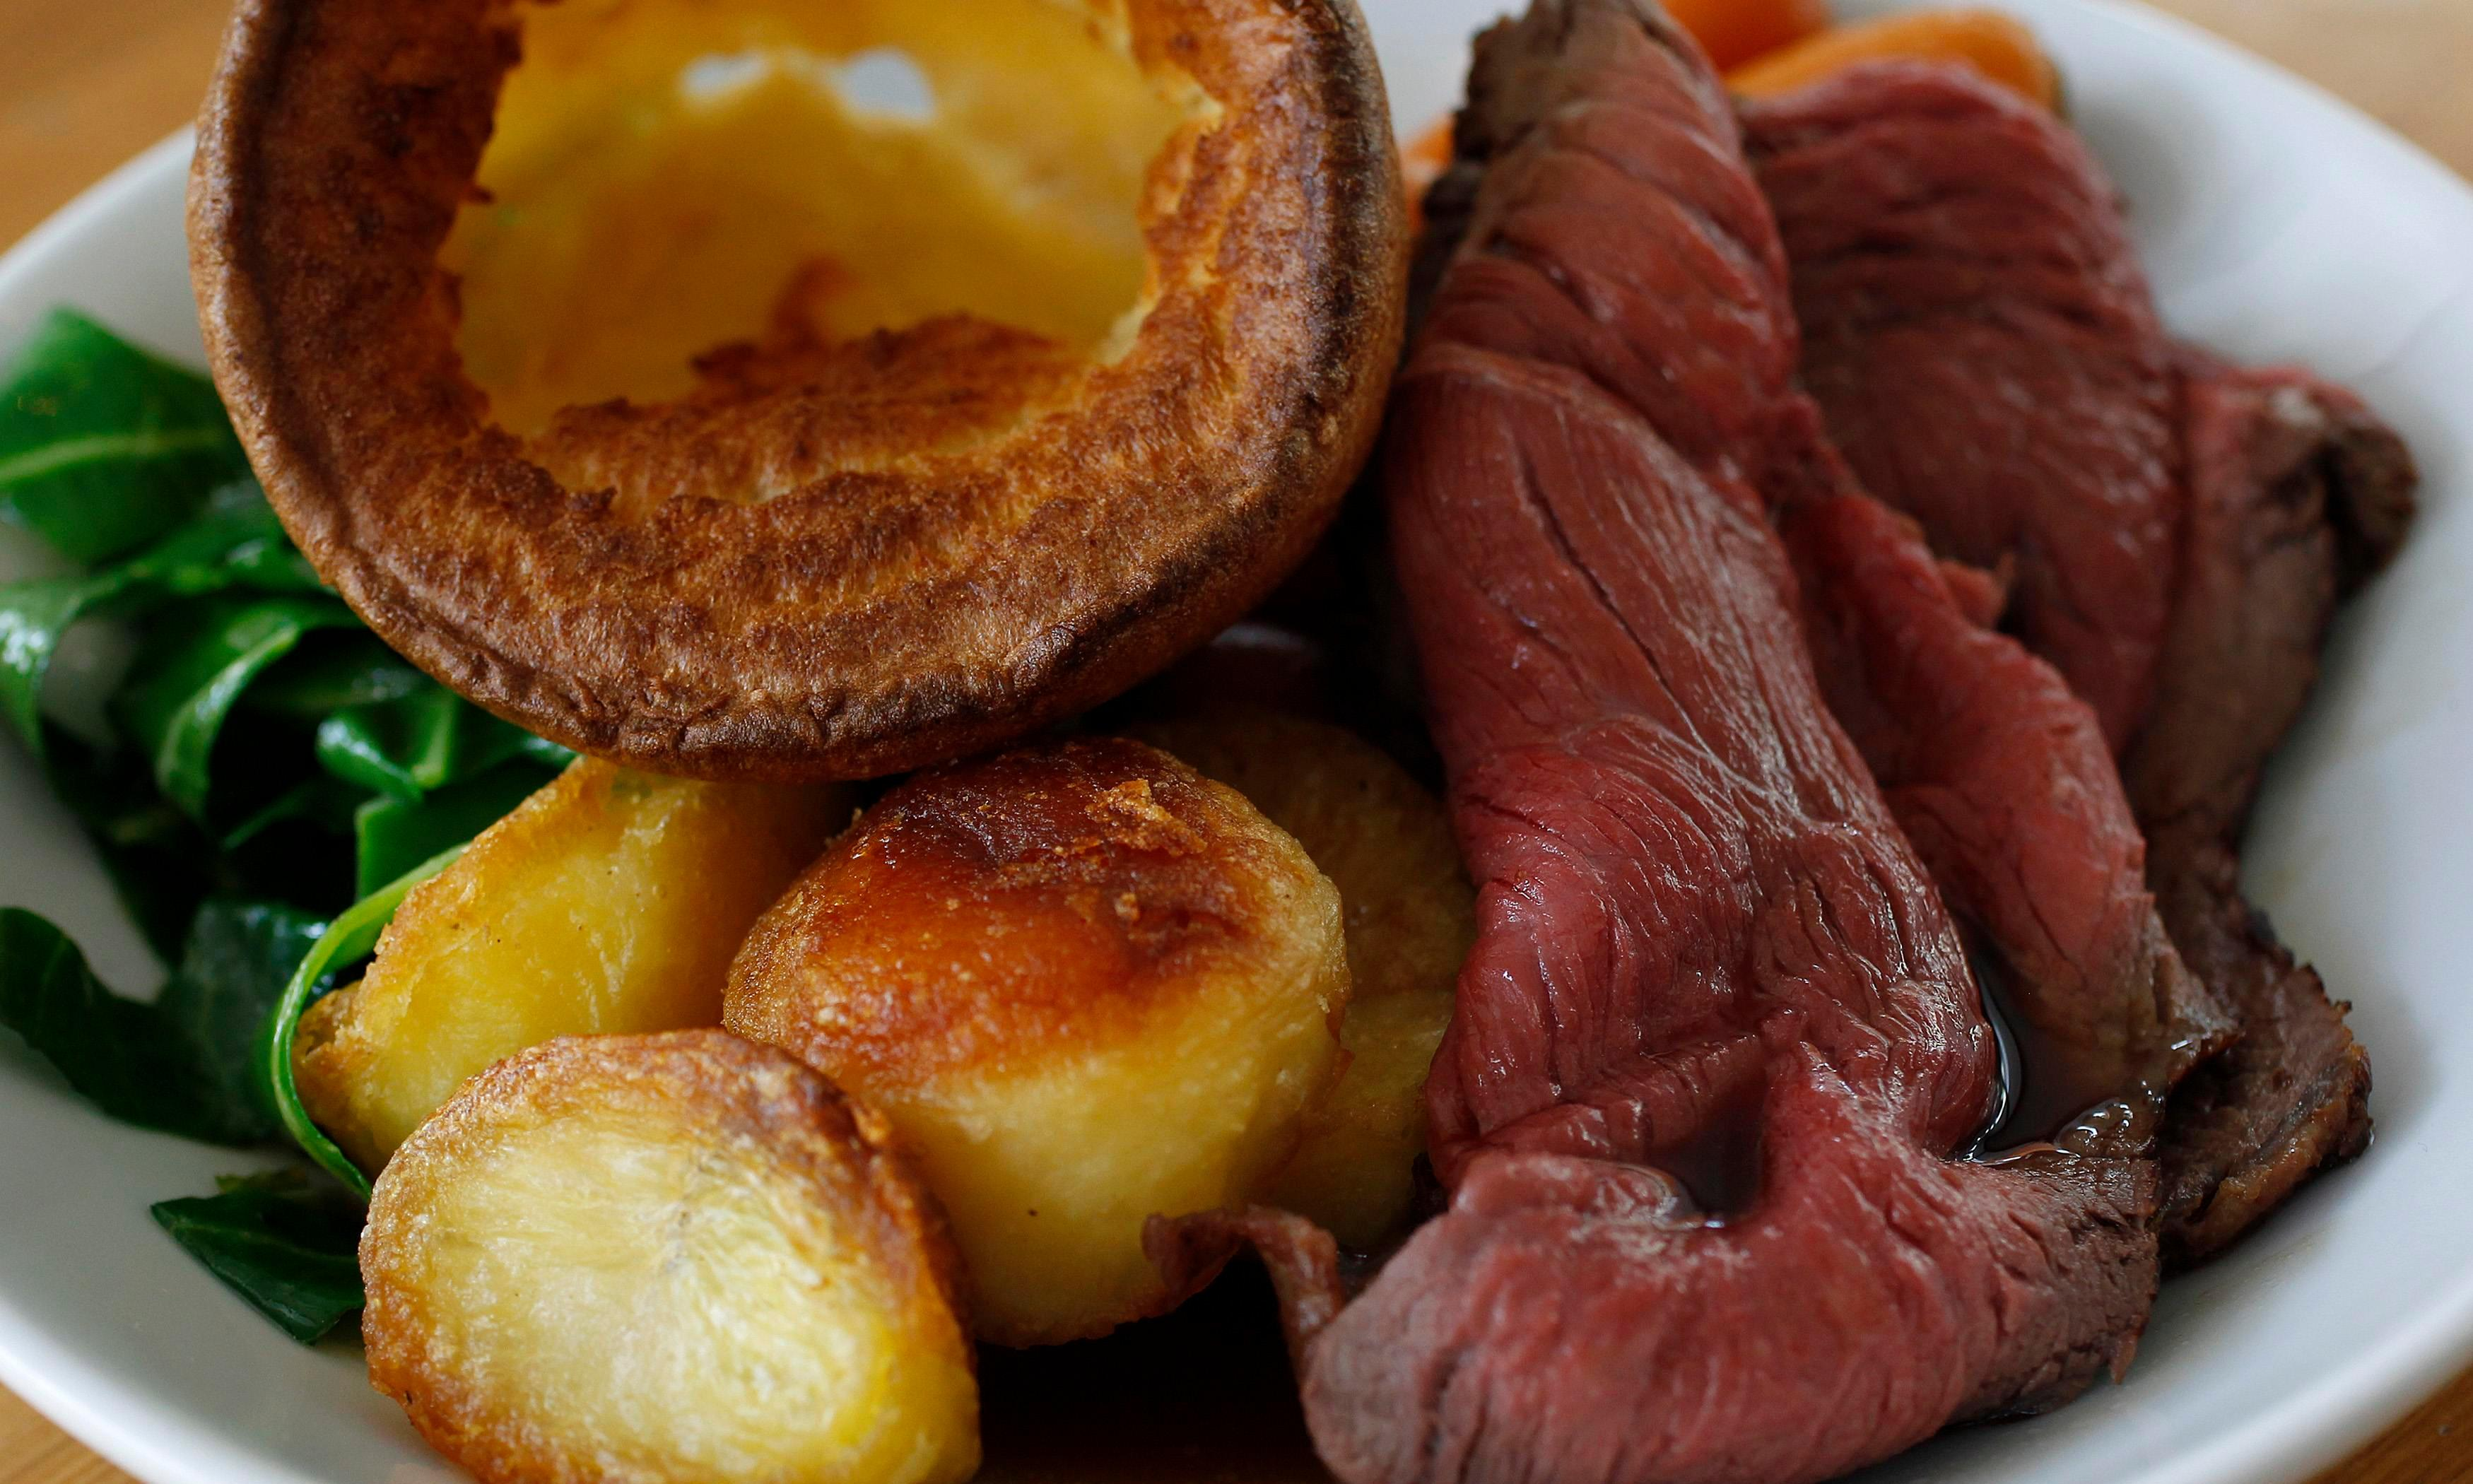 Cooking Sunday roast causes indoor pollution 'worse than Delhi'